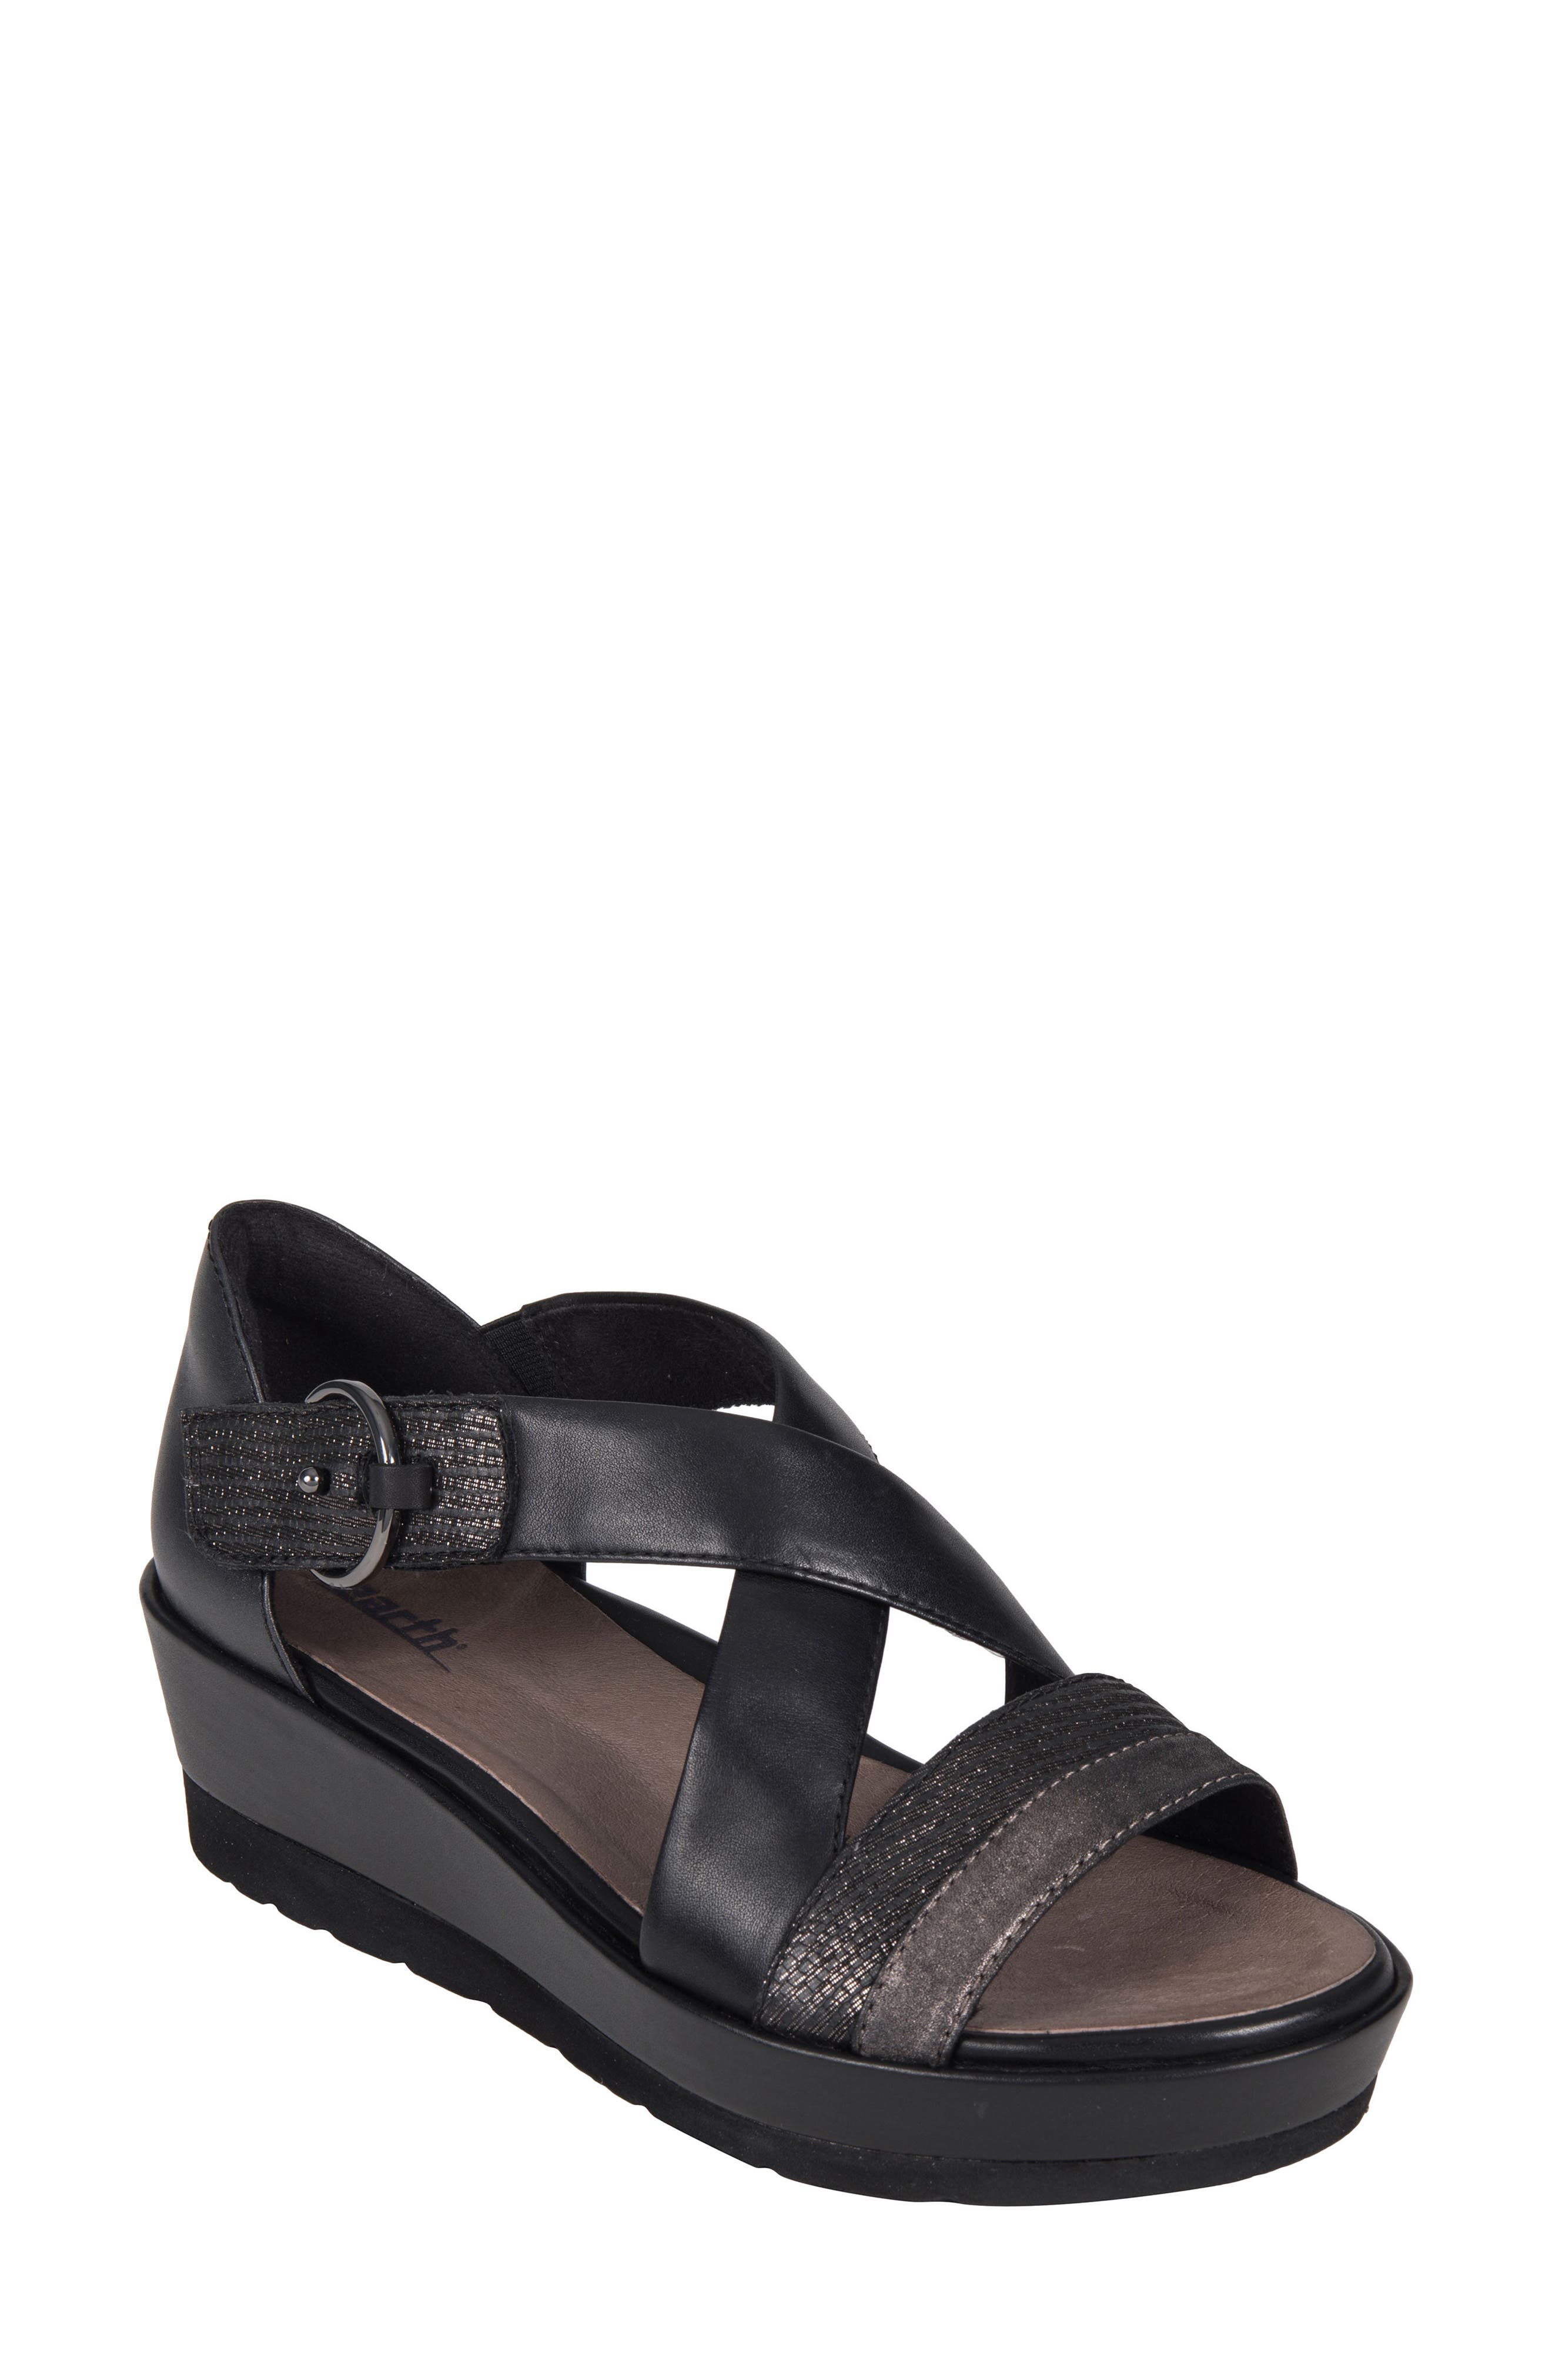 Hibiscus Sandal,                         Main,                         color, BLACK LEATHER